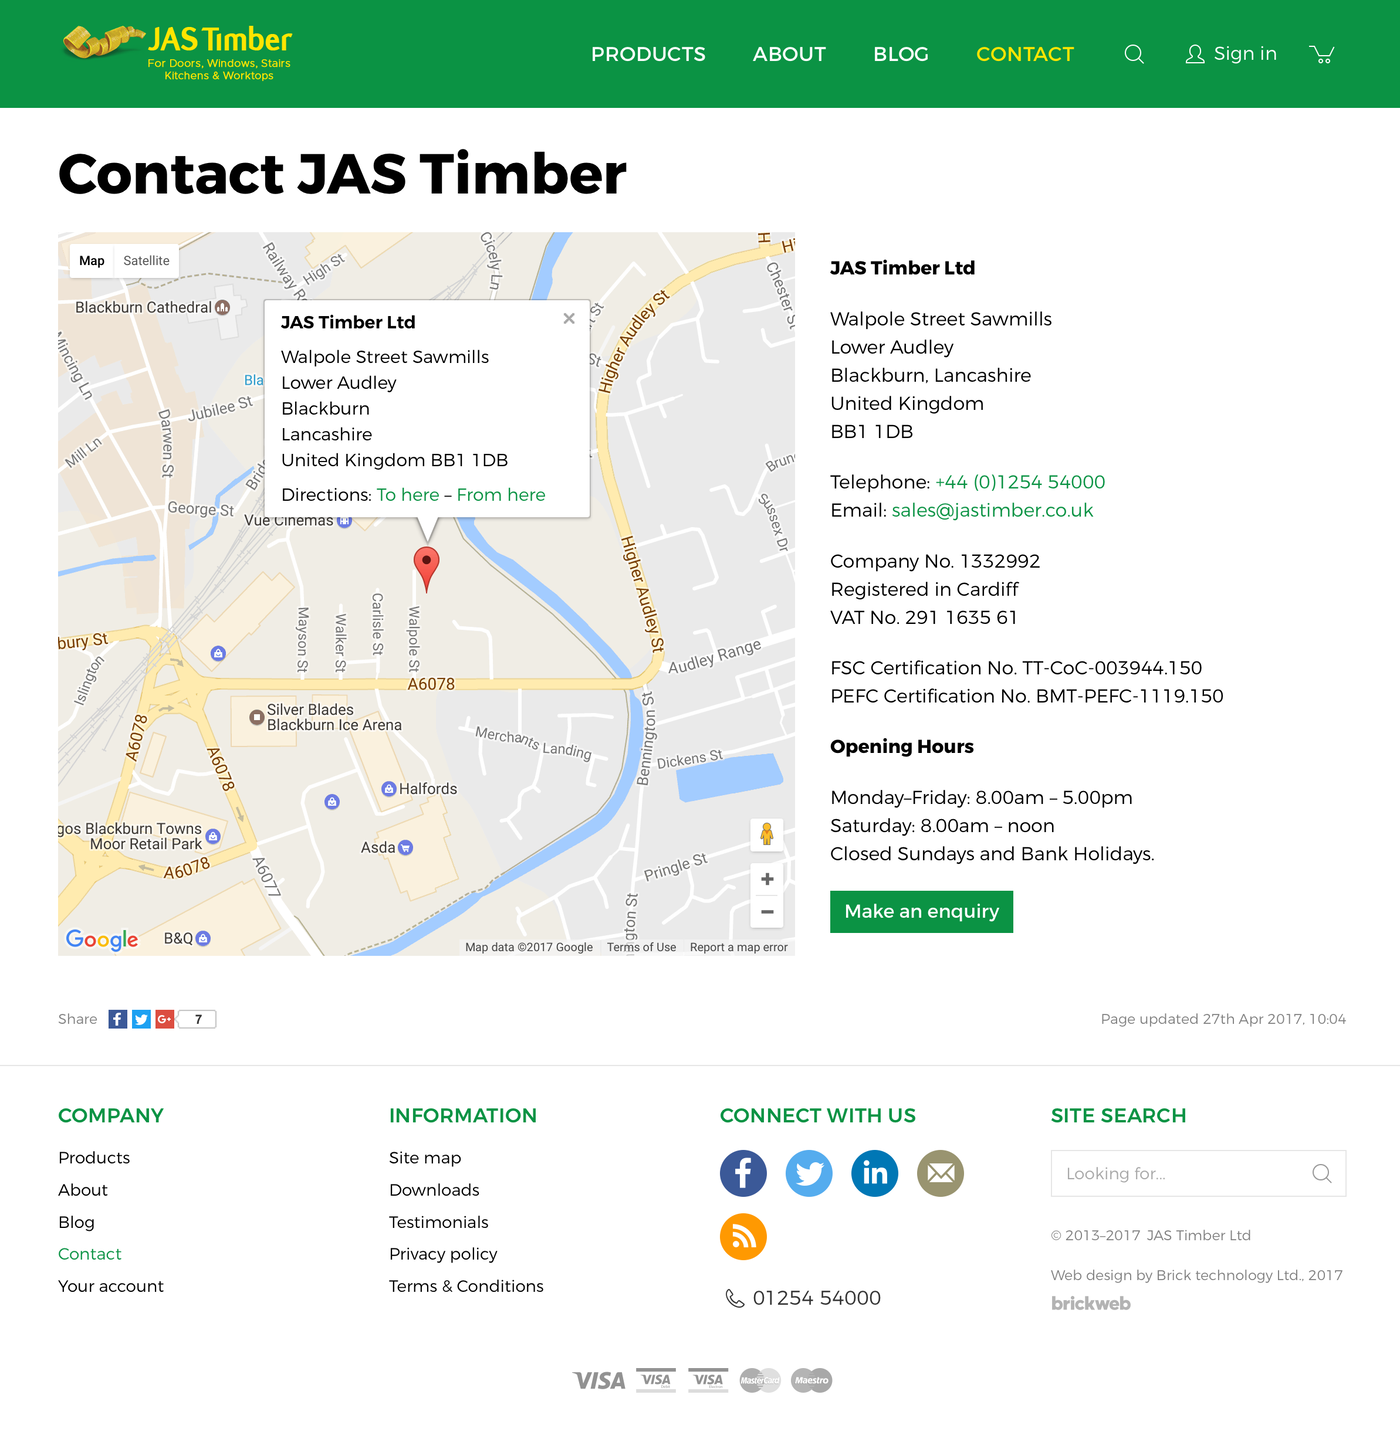 JAS Timber Ltd Contact us